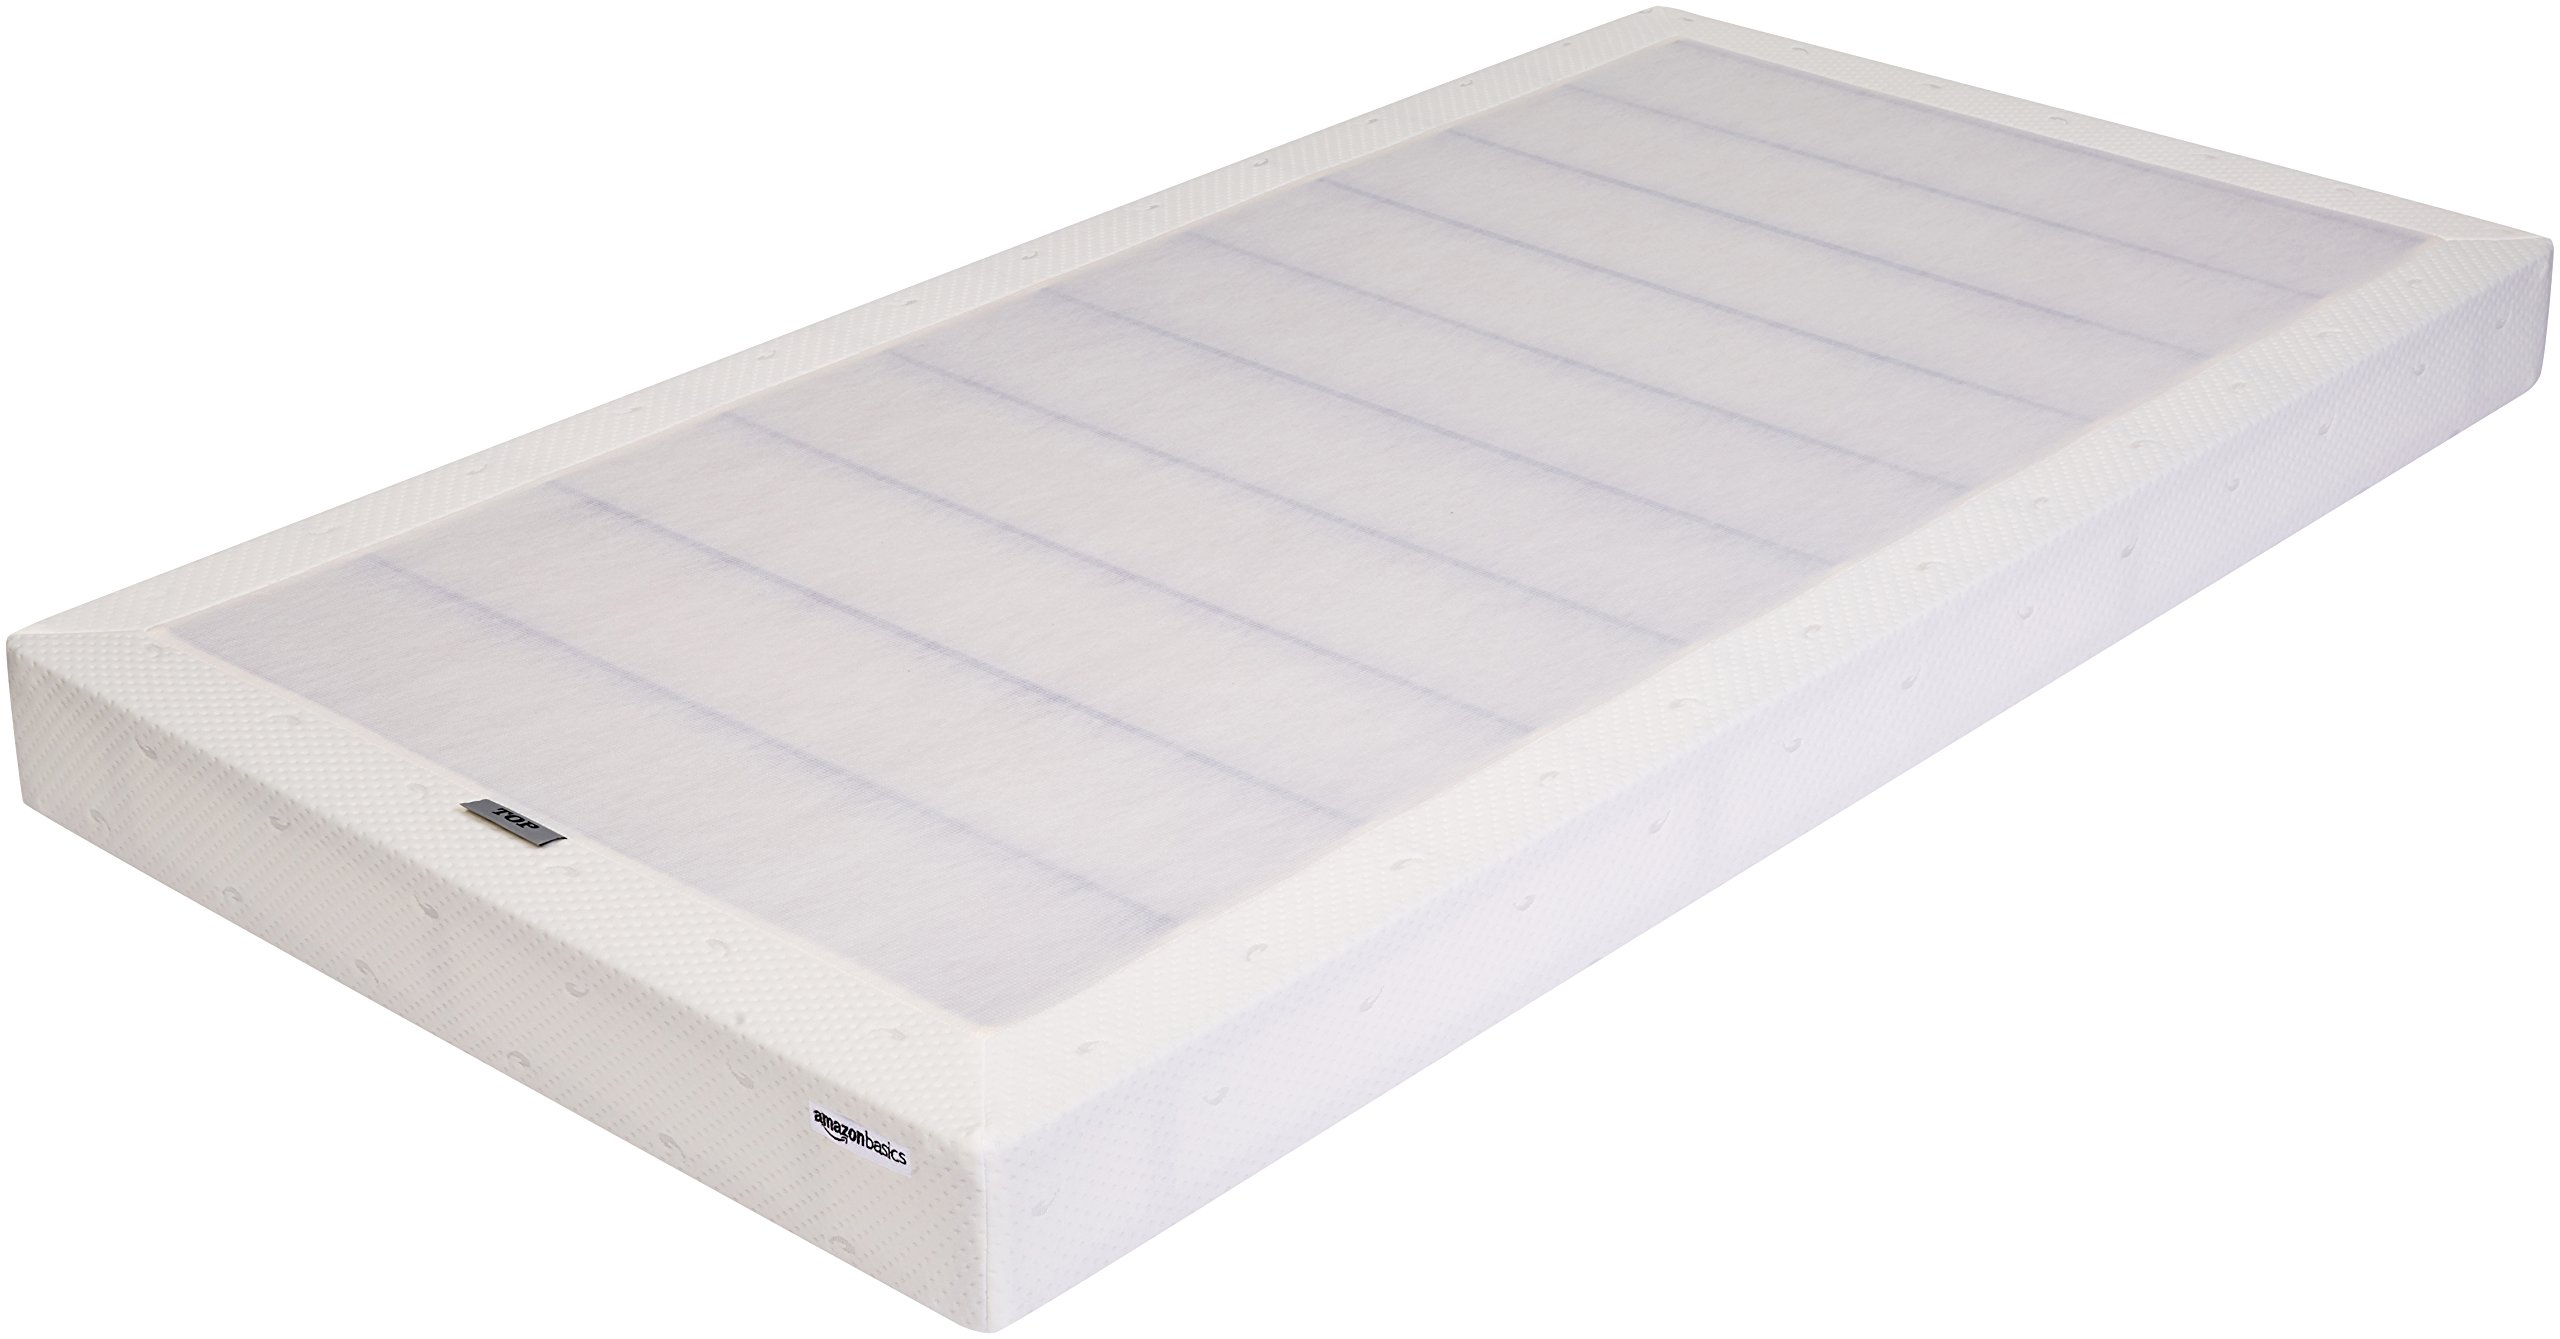 AmazonBasics Mattress Foundation / Smart Box Spring, Tool-Free Easy Assembly - 5-Inch, Twin